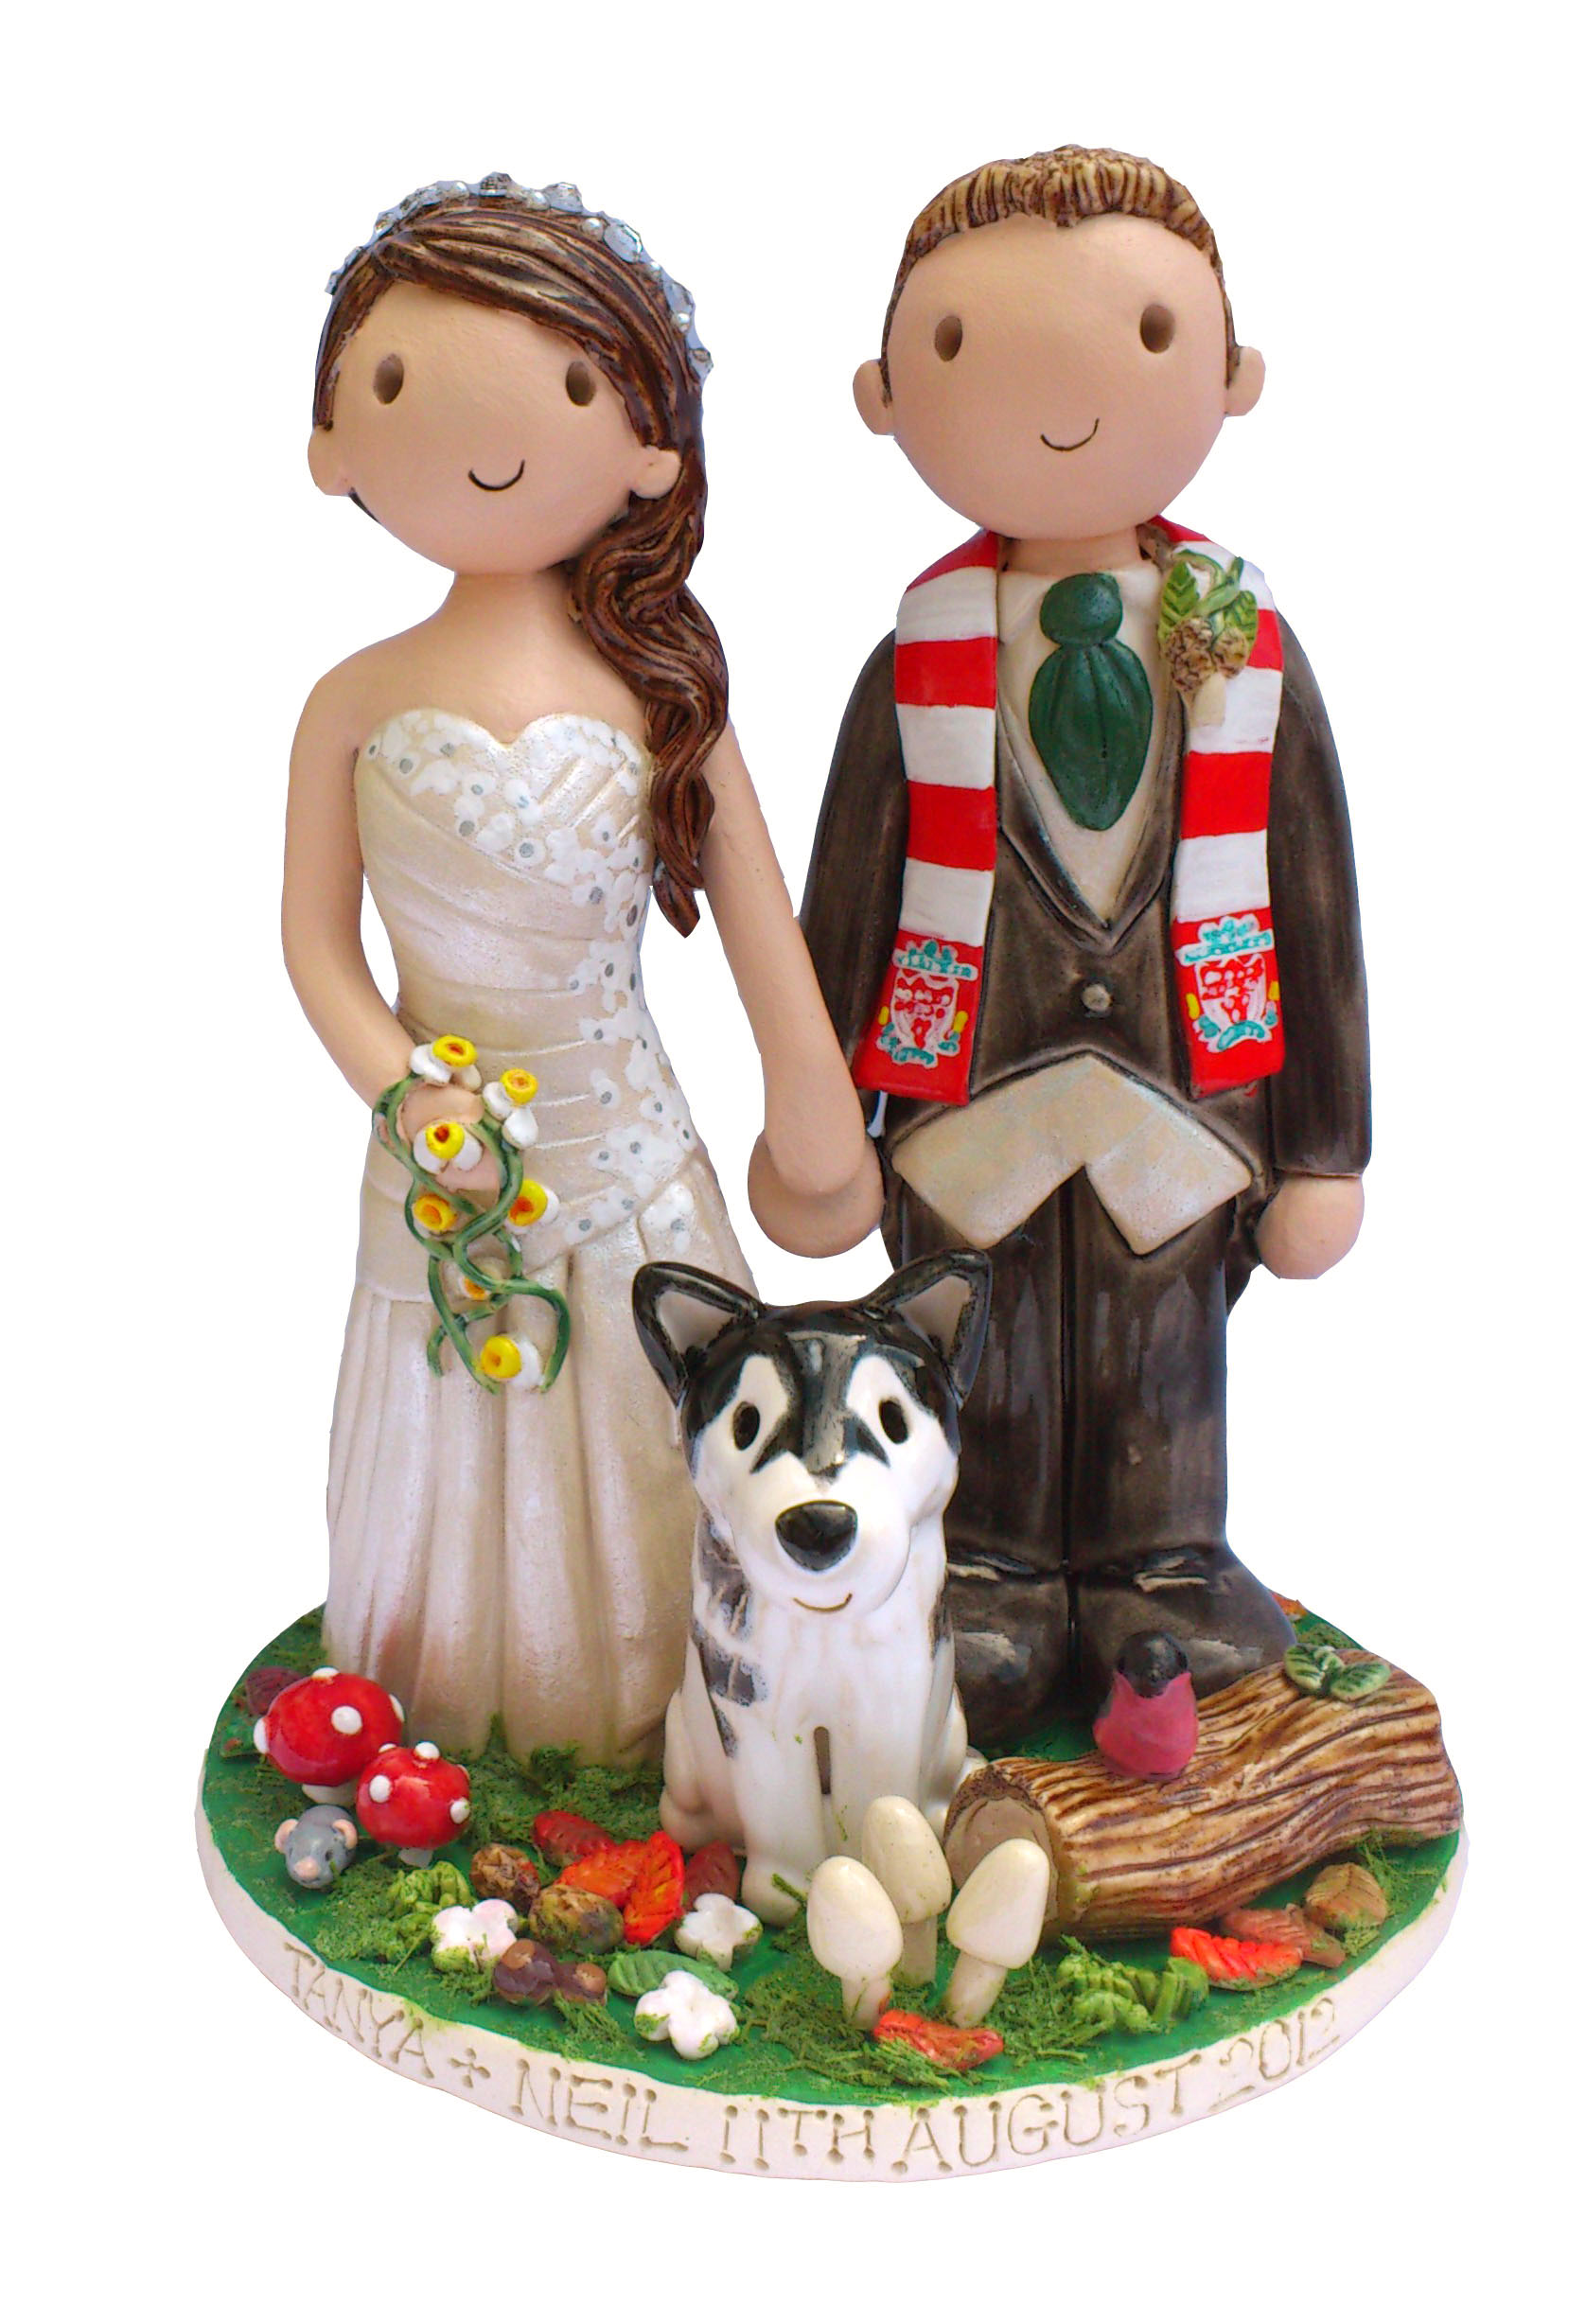 Wedding Cake Toppers Uk Personalised : Wedding Cake Toppers. Hand Made Personalised Wedding Cake ...